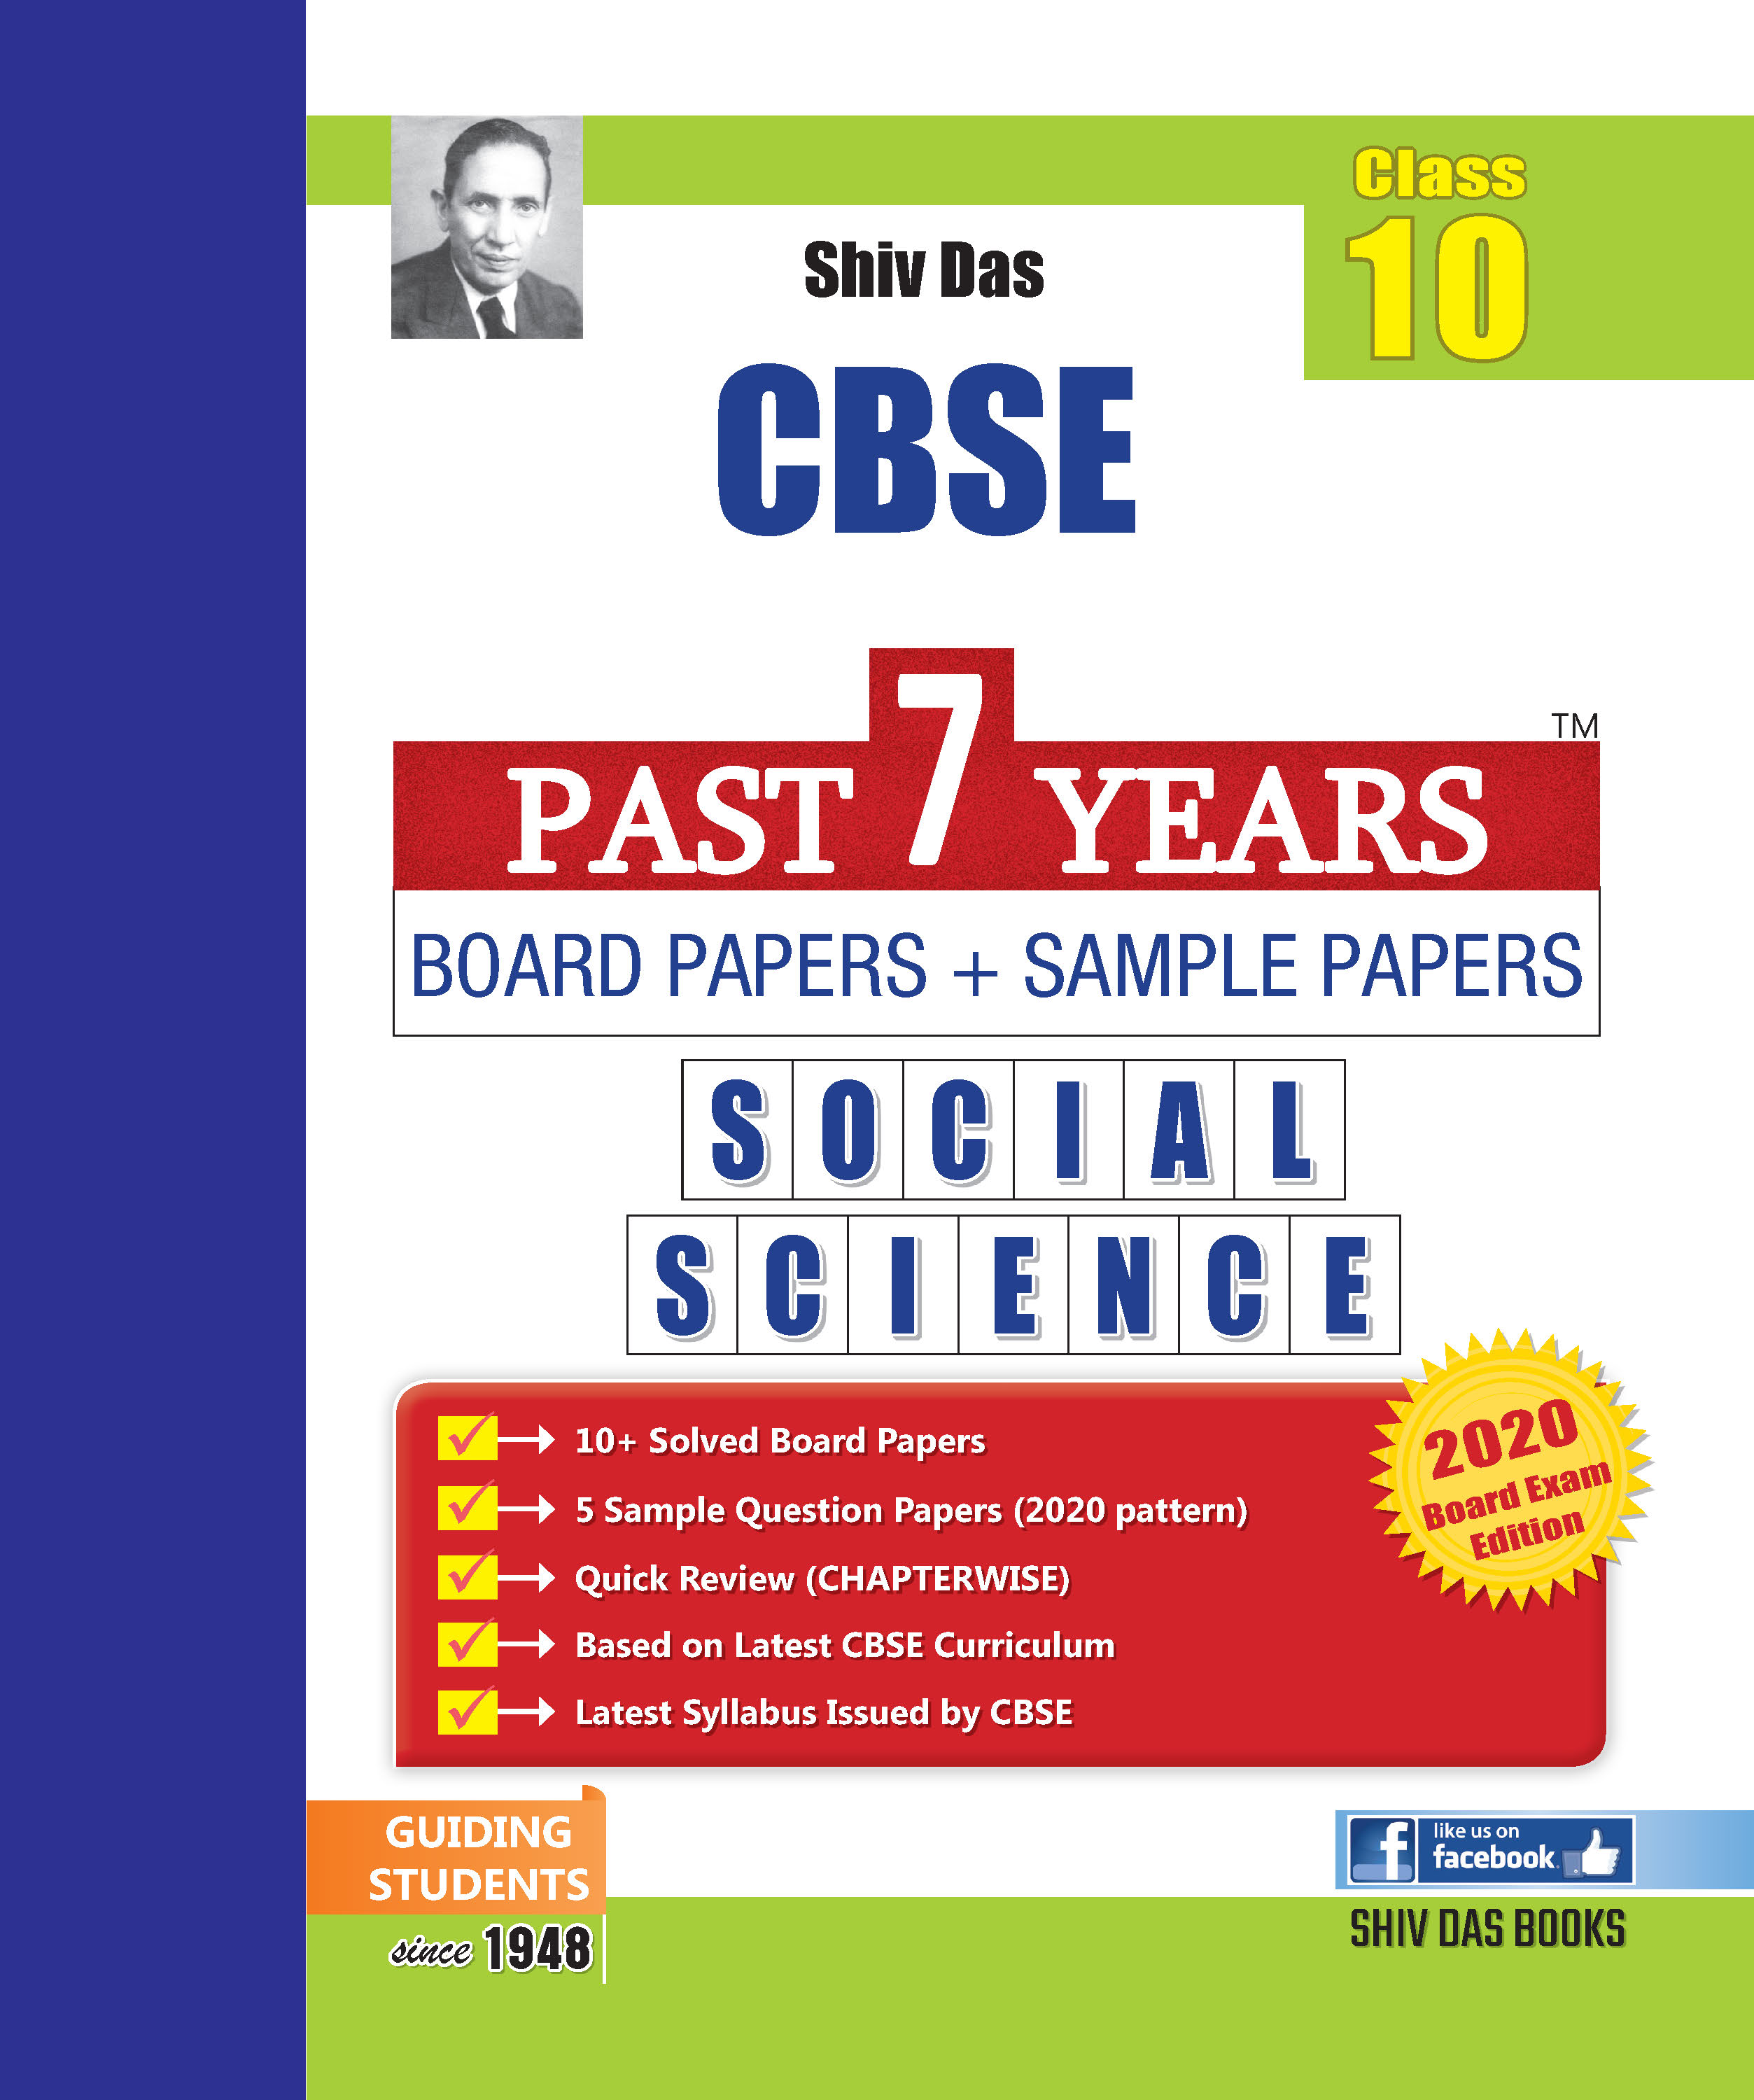 CBSE Past 7 Years Solved Board Papers+Sample Papers for Class 10 Social Science (2020 Board Exam Edition)